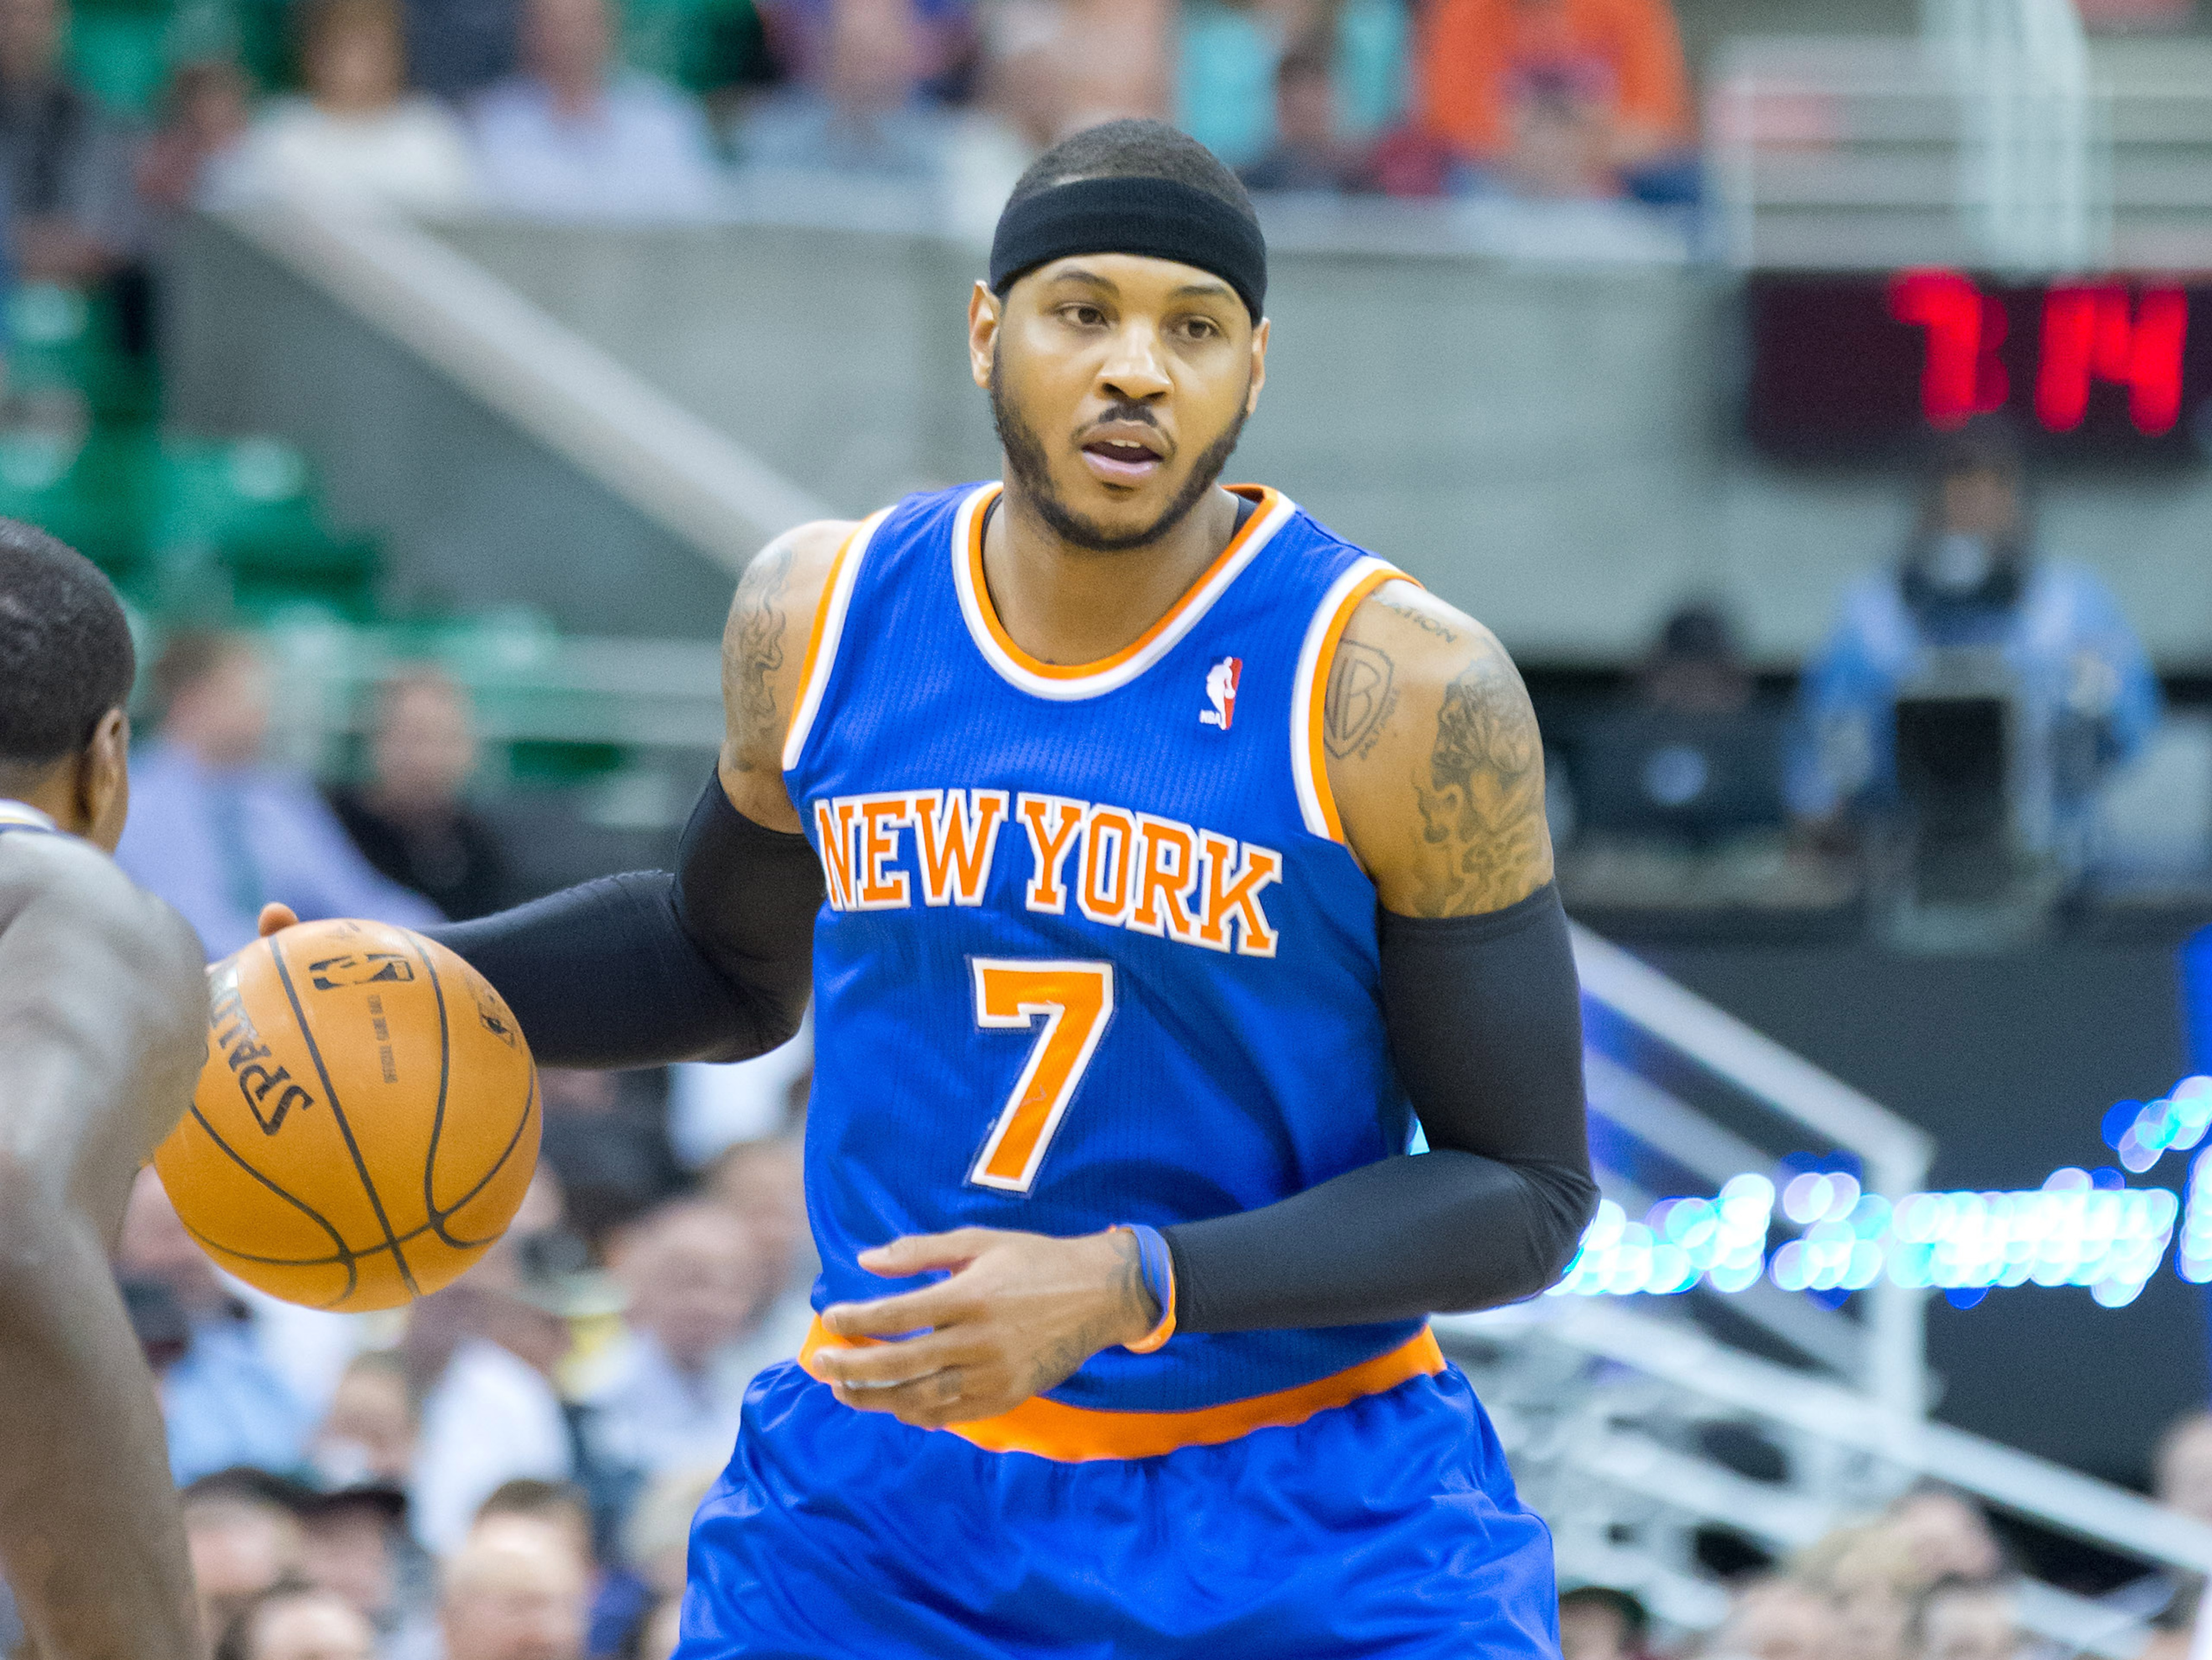 All signs point to Carmelo Anthony staying with New York Knicks